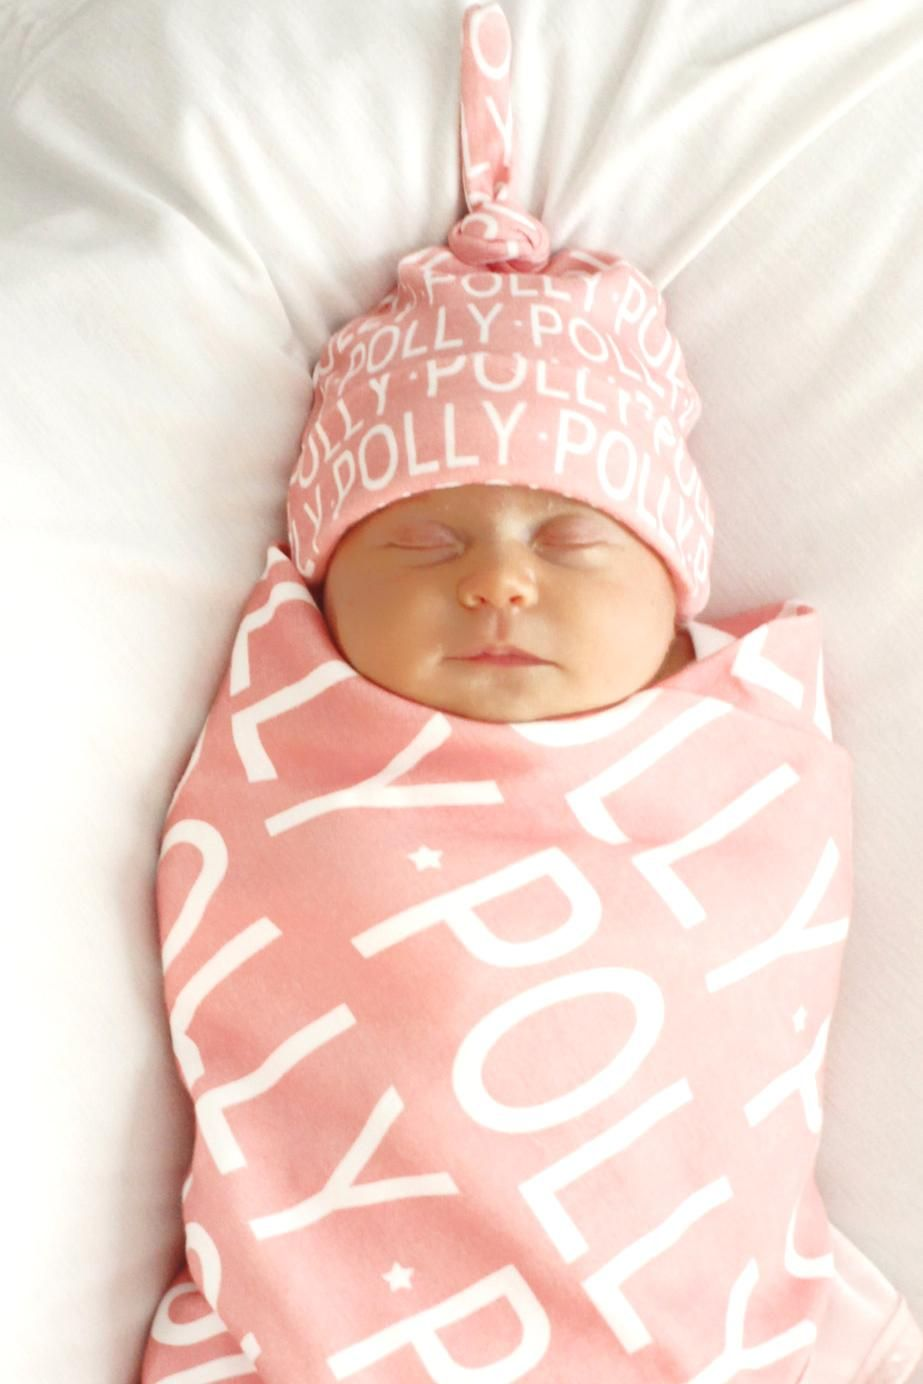 125ed41223d1 Personalized baby blanket and hat set organic knit swaddle ...